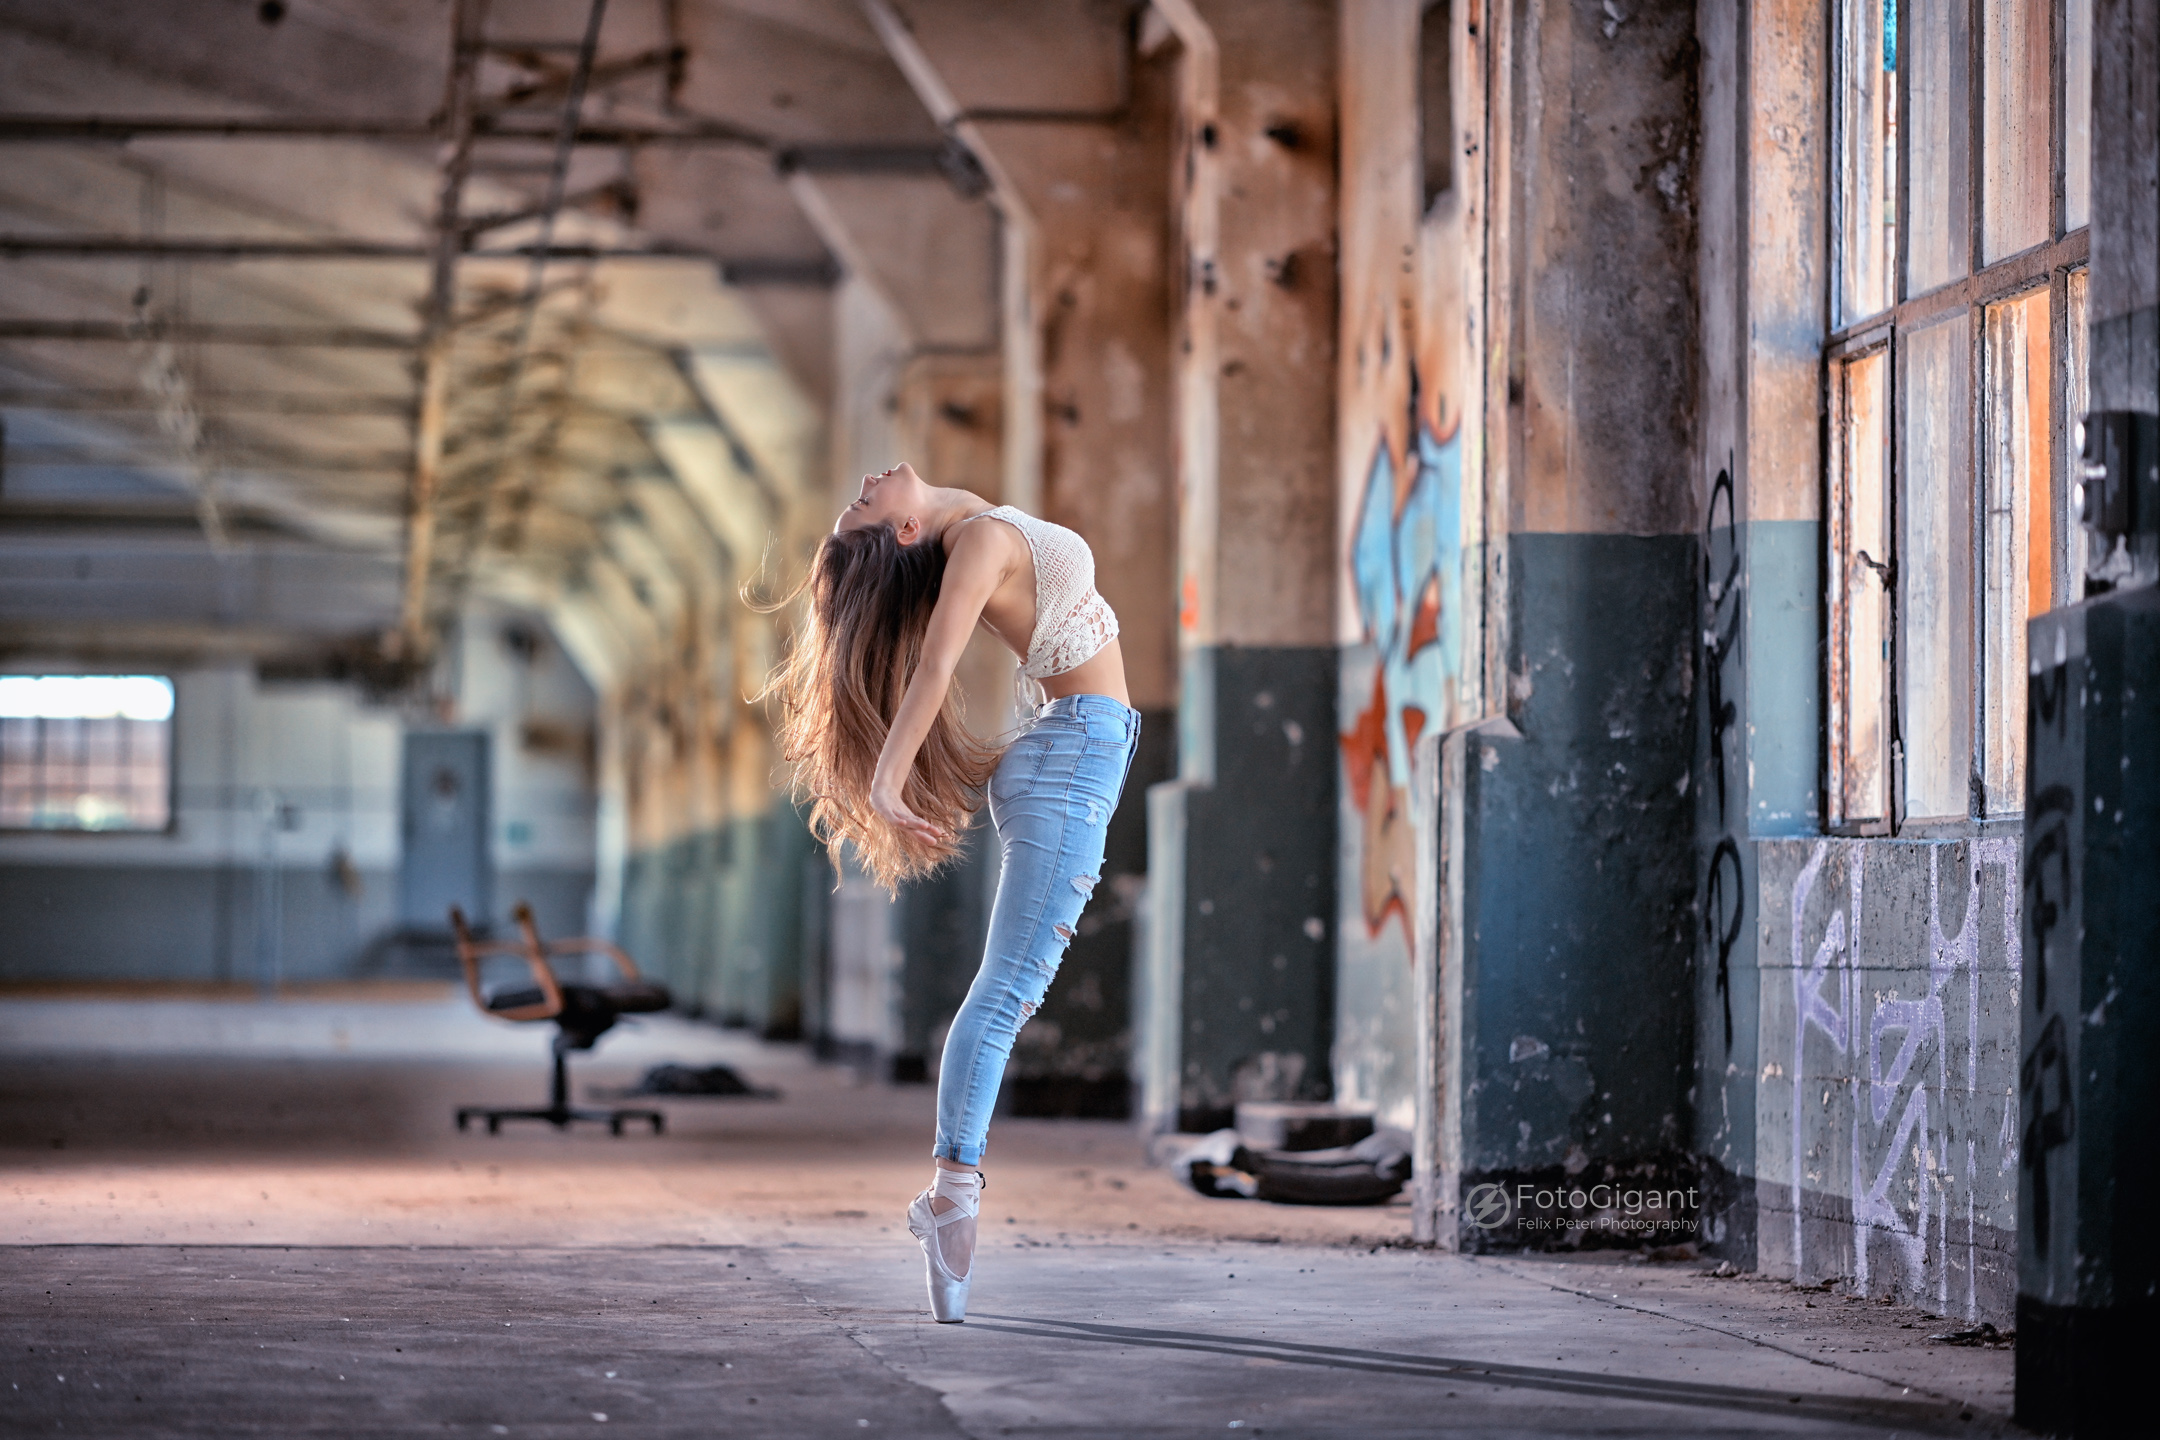 Balletdancer_in_Lostplace_02.jpg